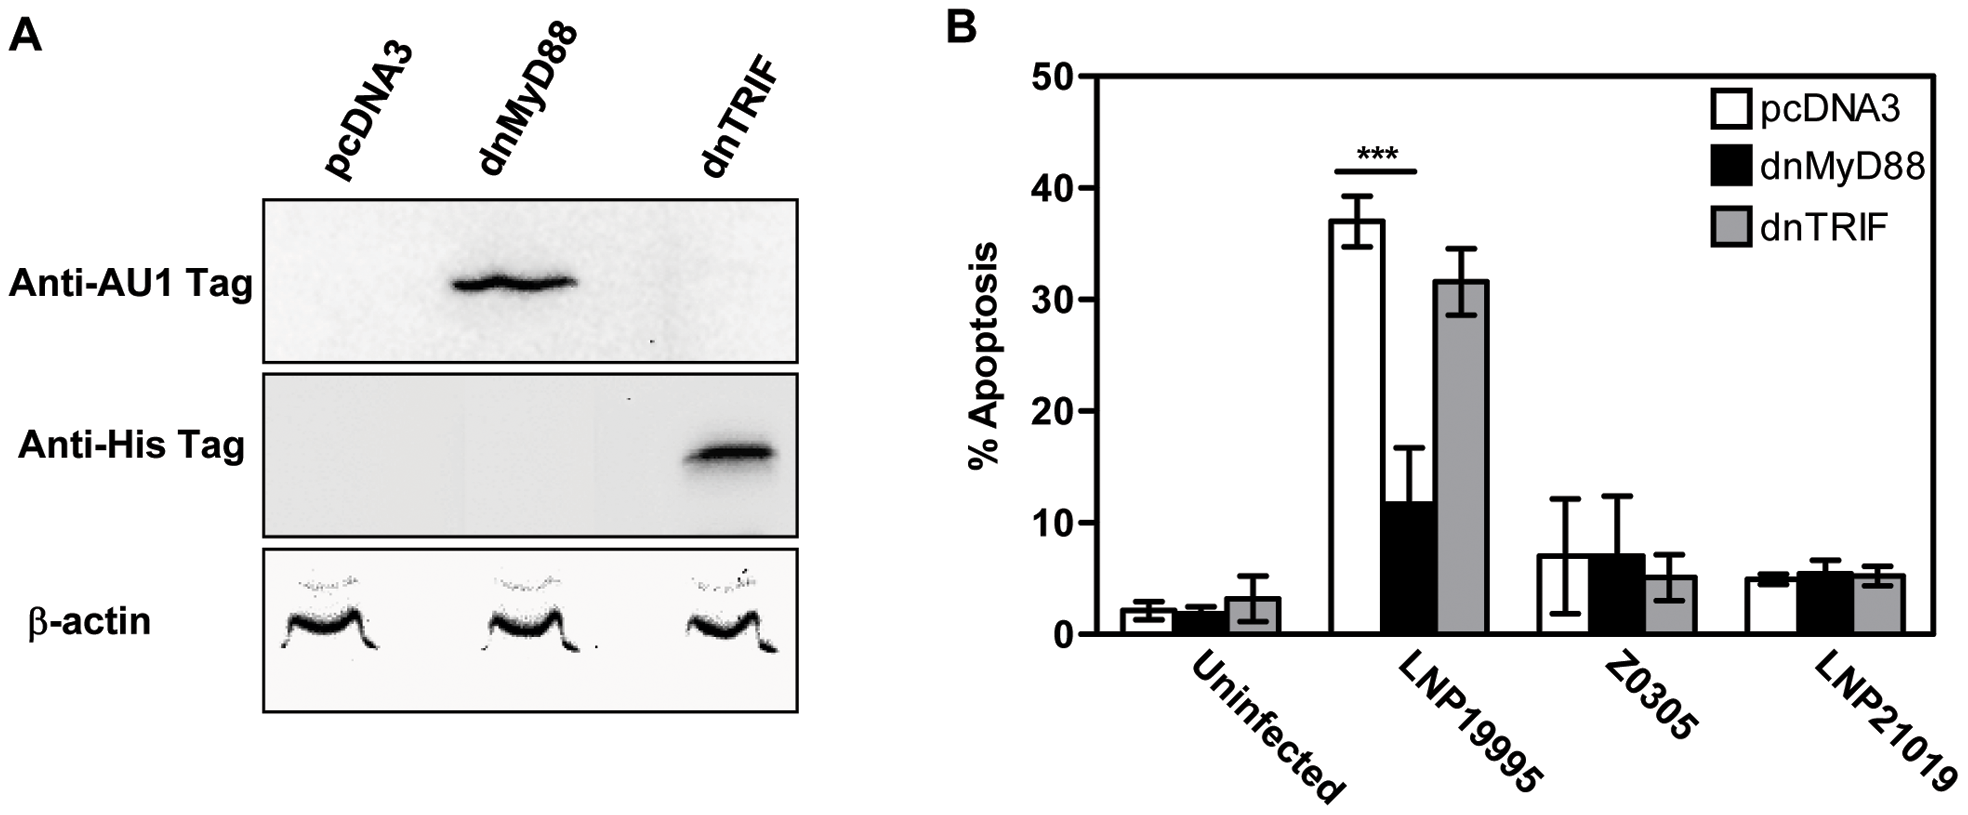 Expression of dnMyD88 but not dnTRIF inhibits ST-11-induced apoptosis.